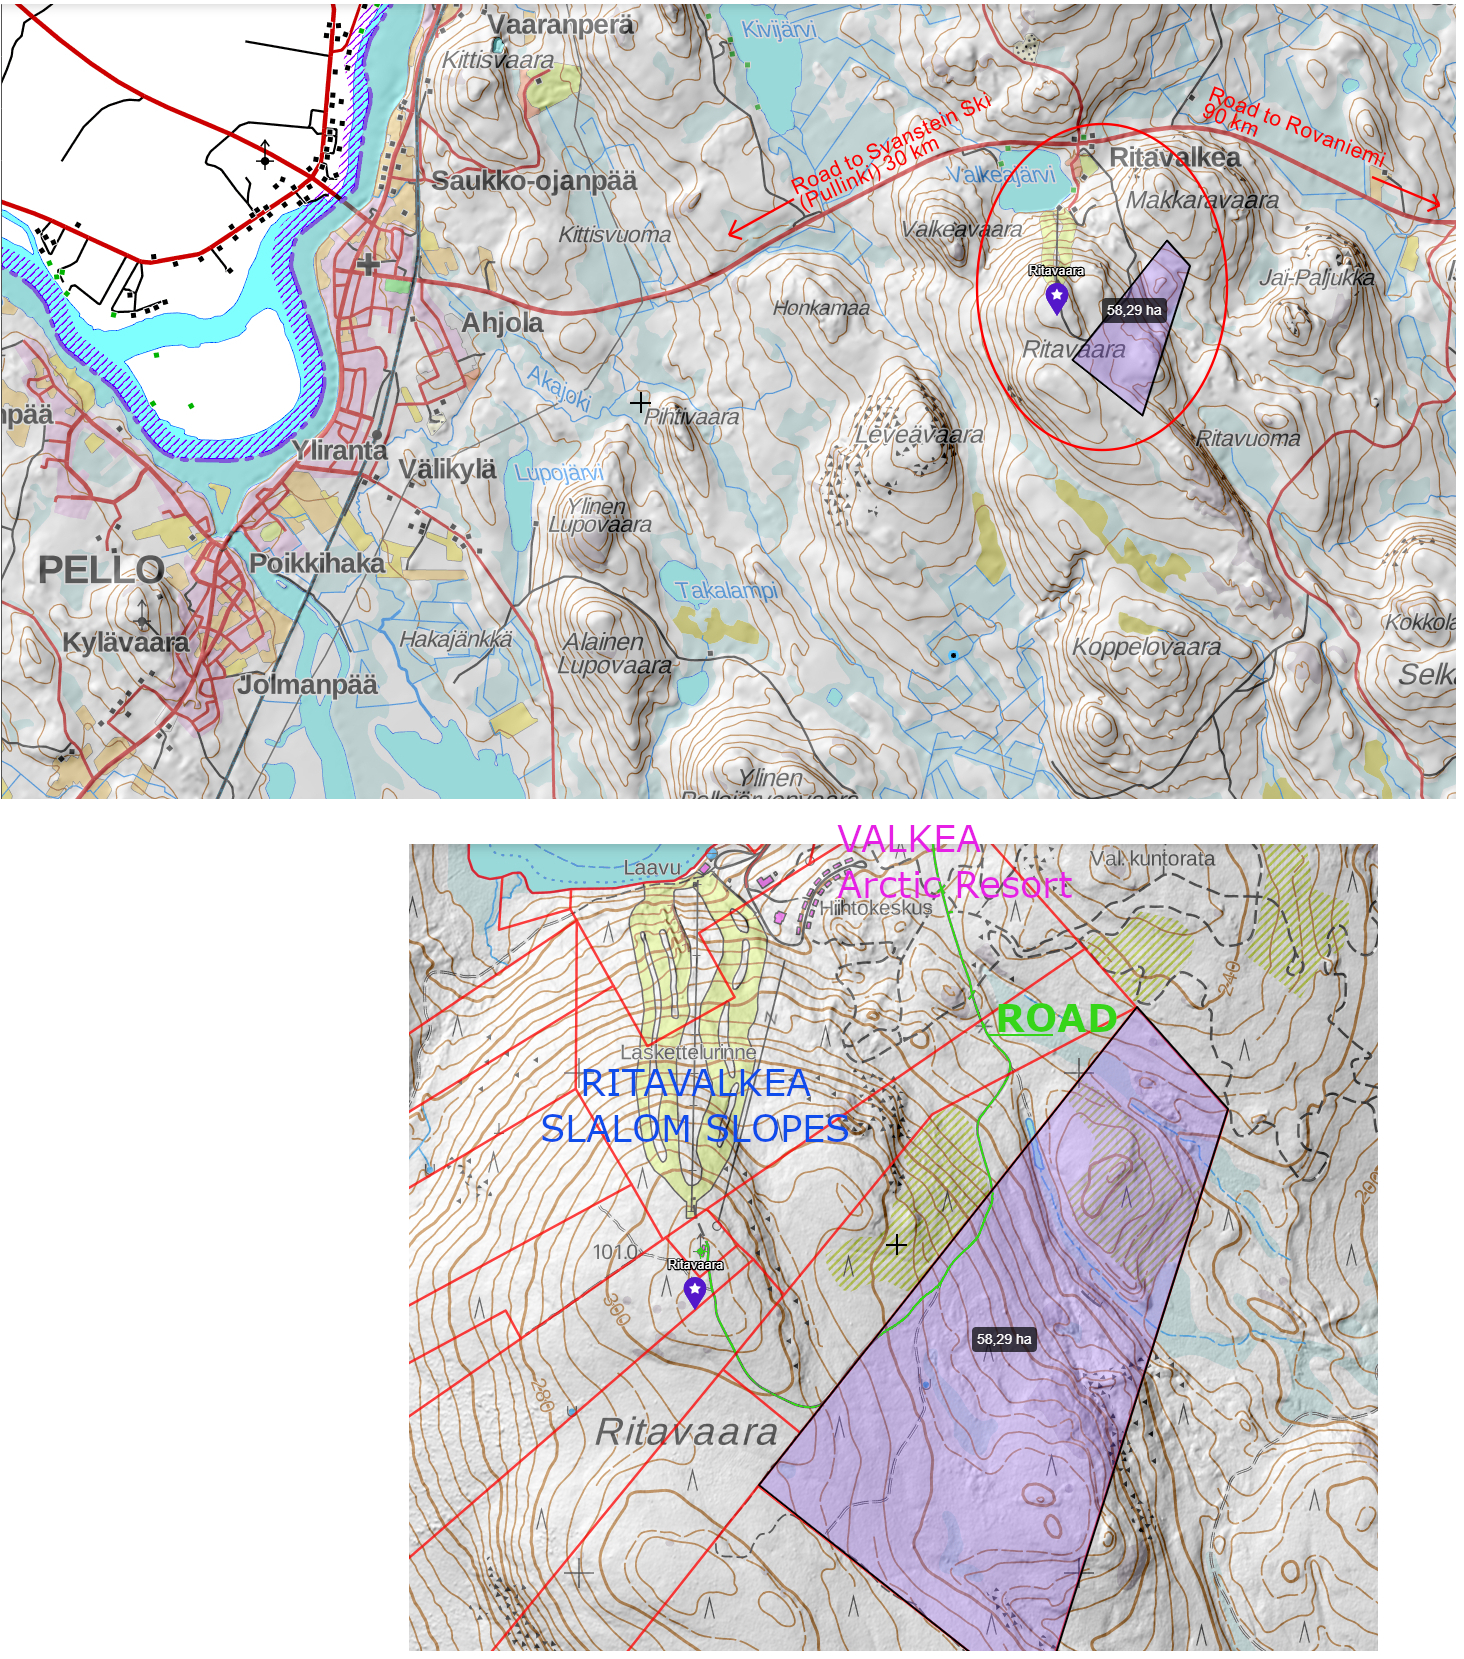 Lapland For Sale Land Lot Plot At Resort Area Near Rovaniemi